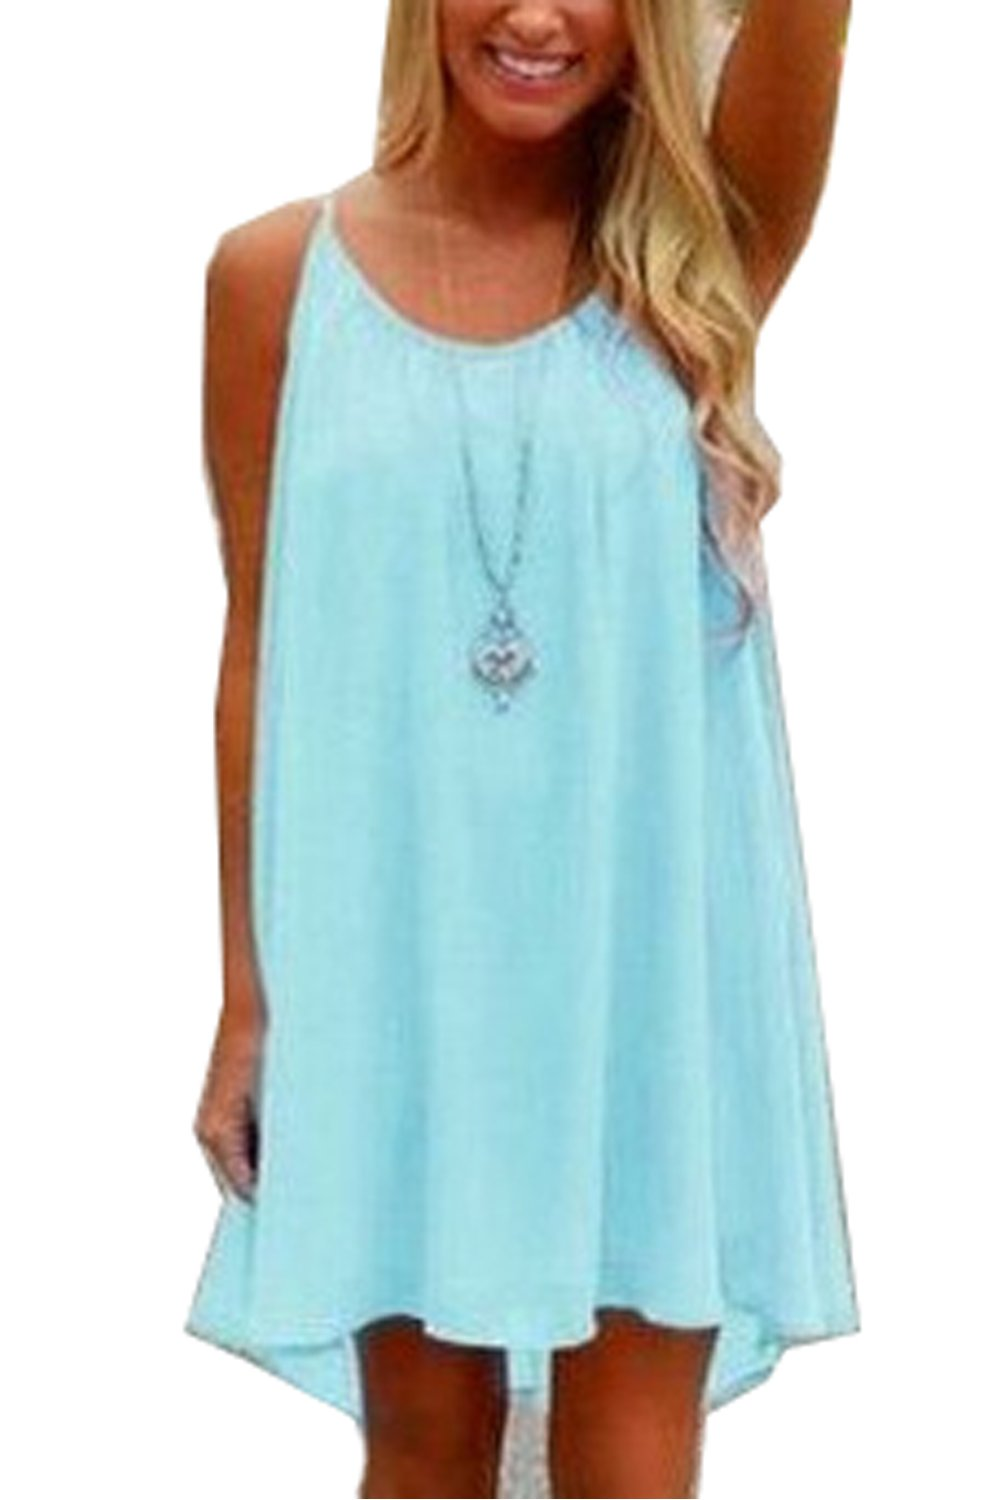 Amstt Womens Summer Sexy Vibrant Color Chiffon Dress Bathing Suit Cover up (M, Light Blue)